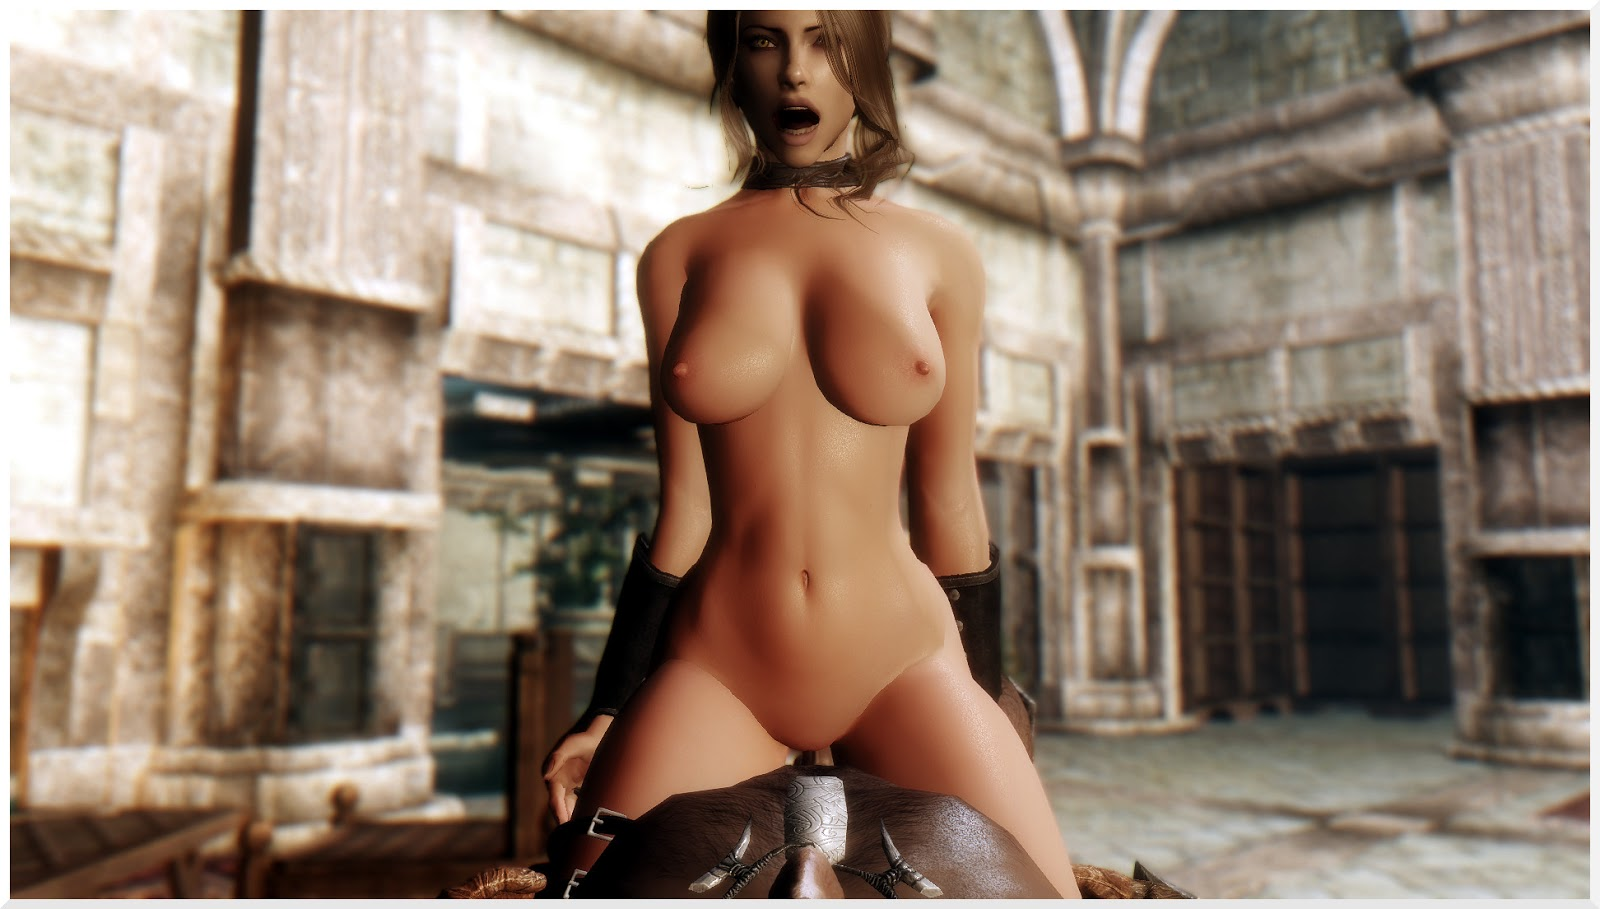 Skyrim nude sexy hot girls cartoon hardcore video